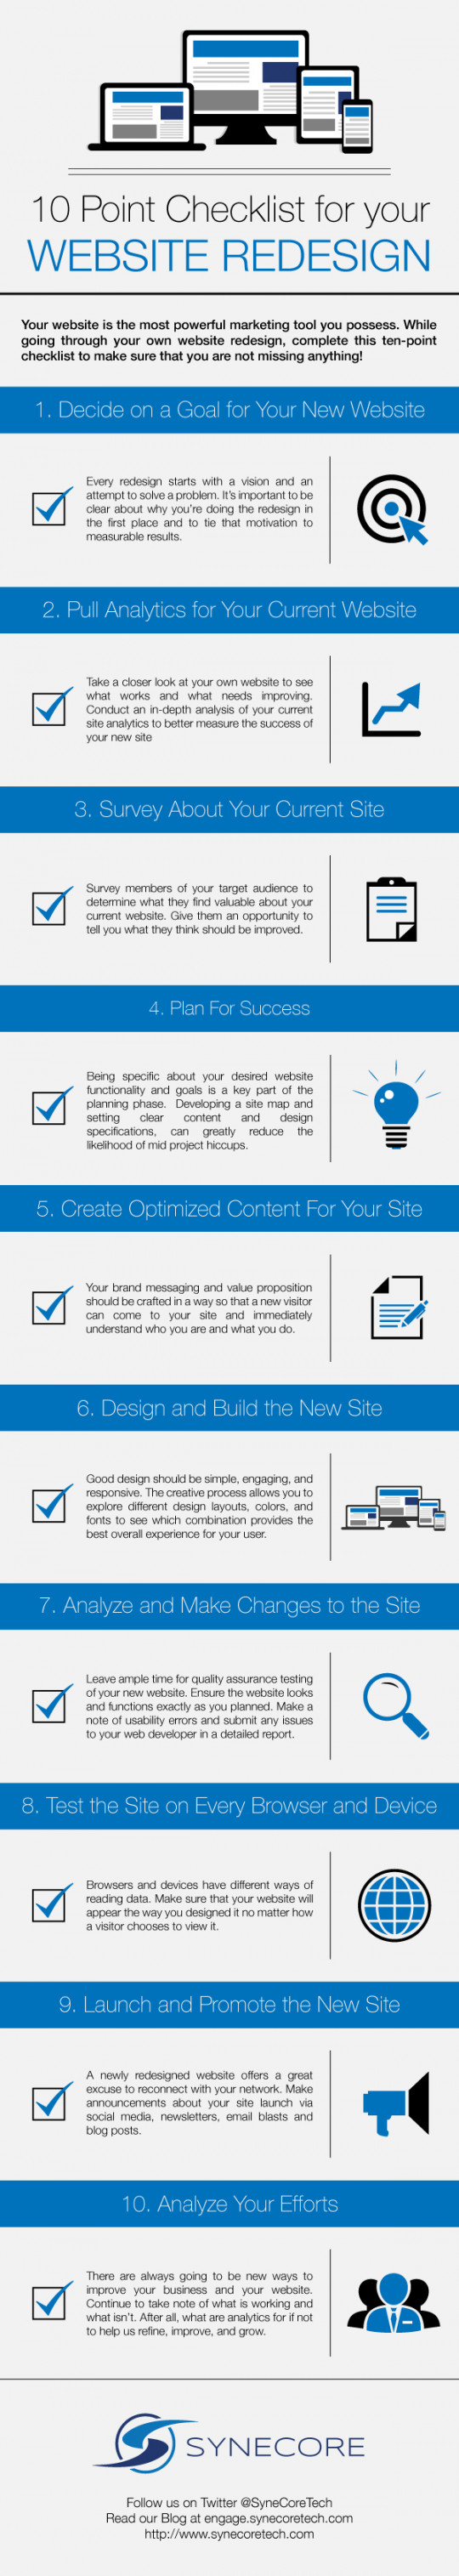 10 Point Checklist for Your Website Redesign